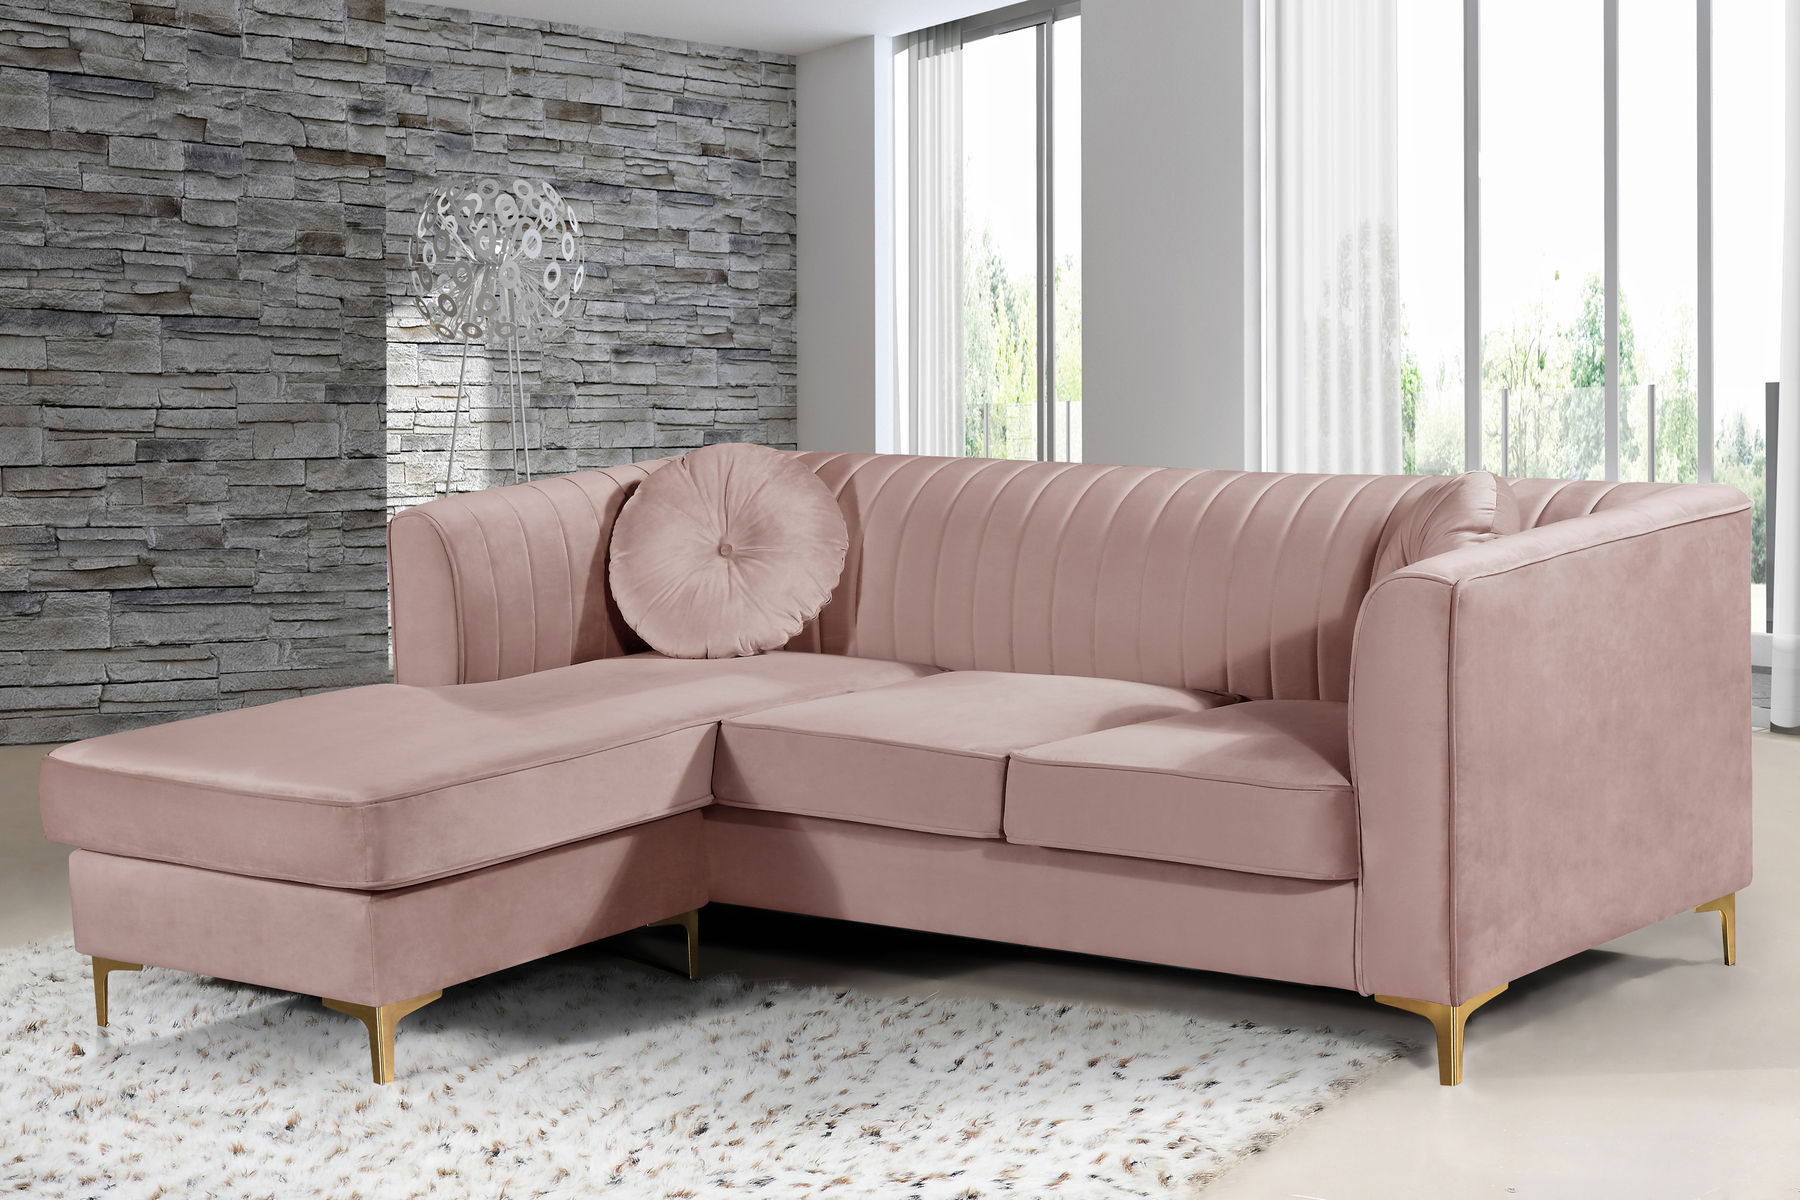 Picture of: Eliana Pink Sectional Sofa 660 Woodbridge Meridian Furniture Sectional Sofas Comfyco Furniture